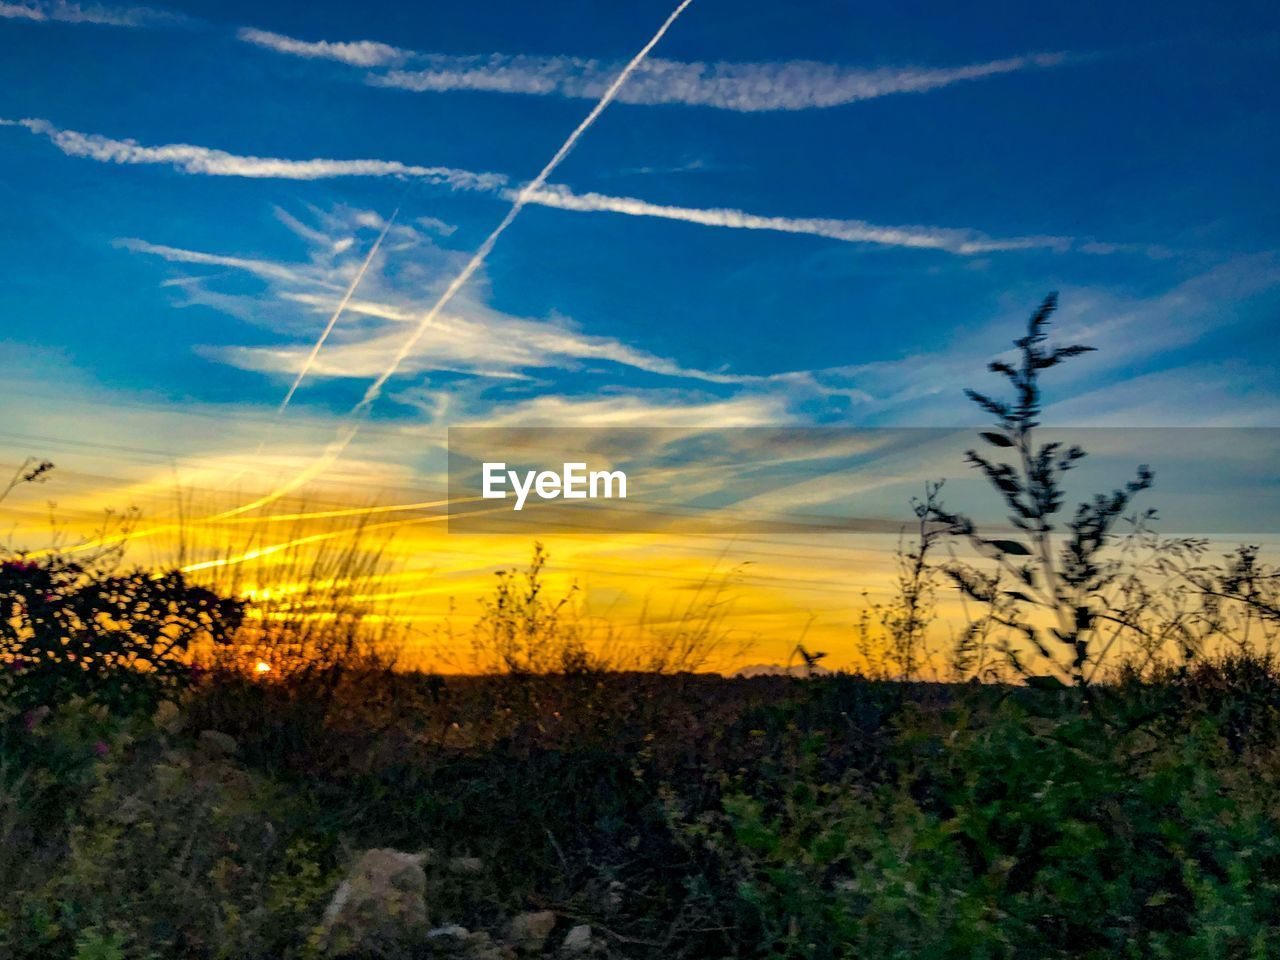 sky, cloud - sky, beauty in nature, tranquil scene, tranquility, scenics - nature, environment, vapor trail, landscape, plant, sunset, no people, nature, non-urban scene, blue, idyllic, field, land, silhouette, orange color, outdoors